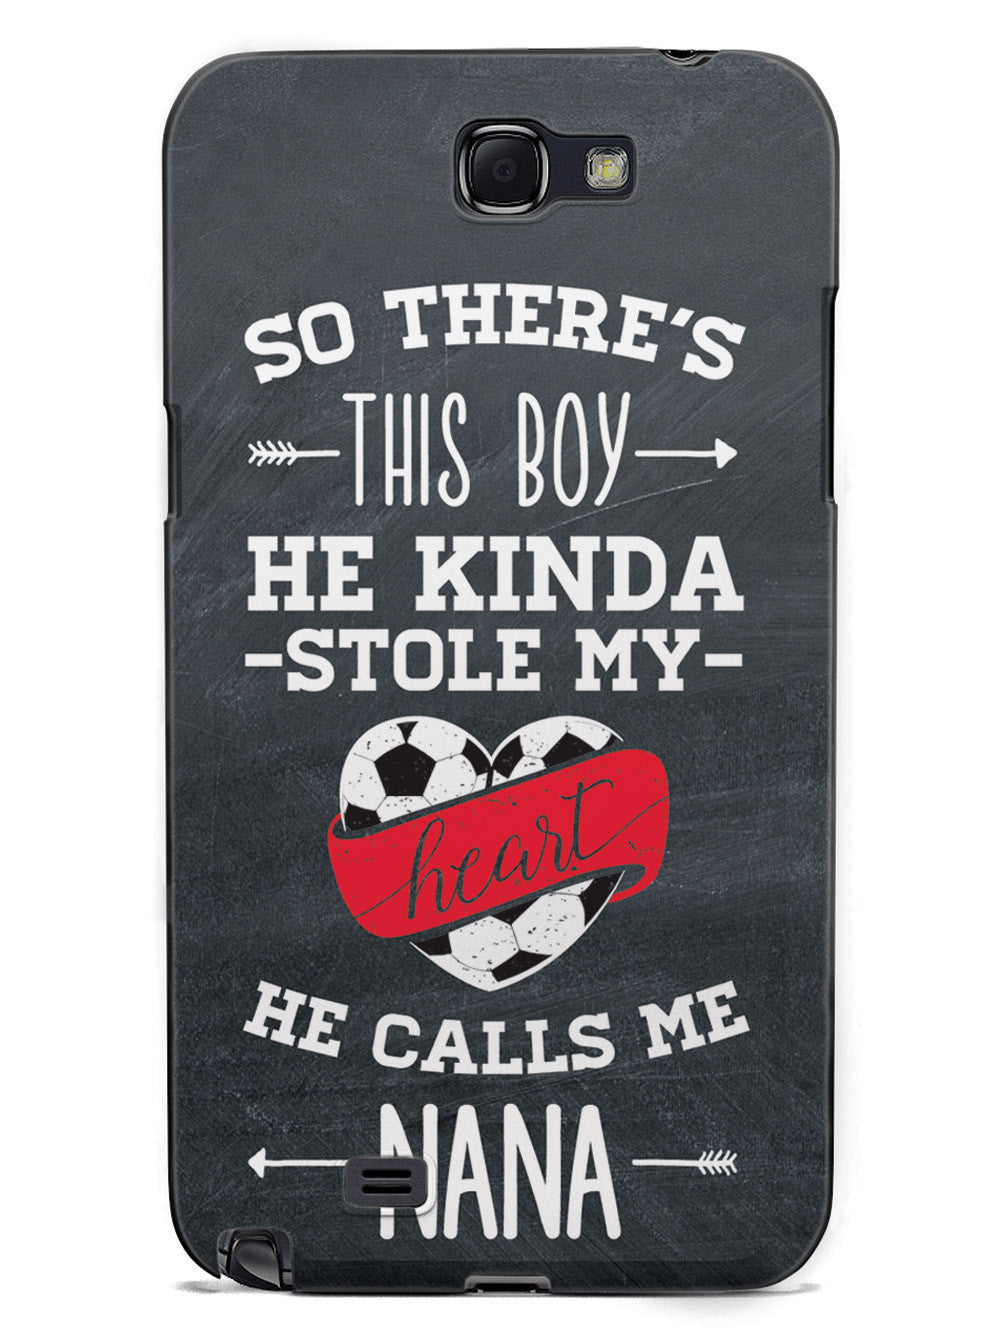 So there's this Boy - Soccer Player - Nana Case